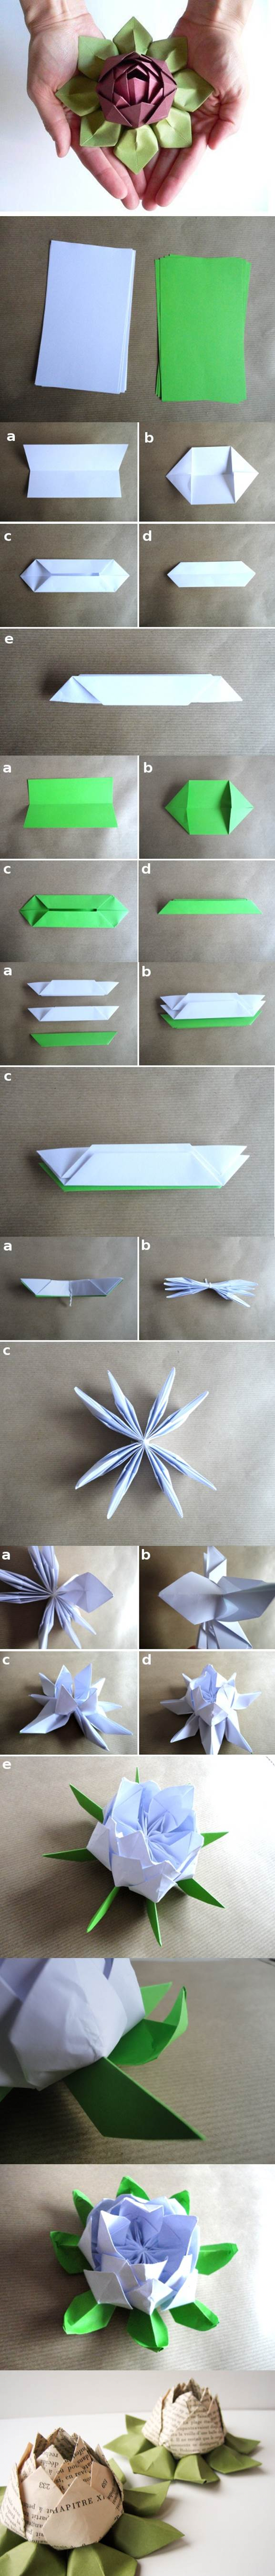 DIY Origami Lotus Flower 2